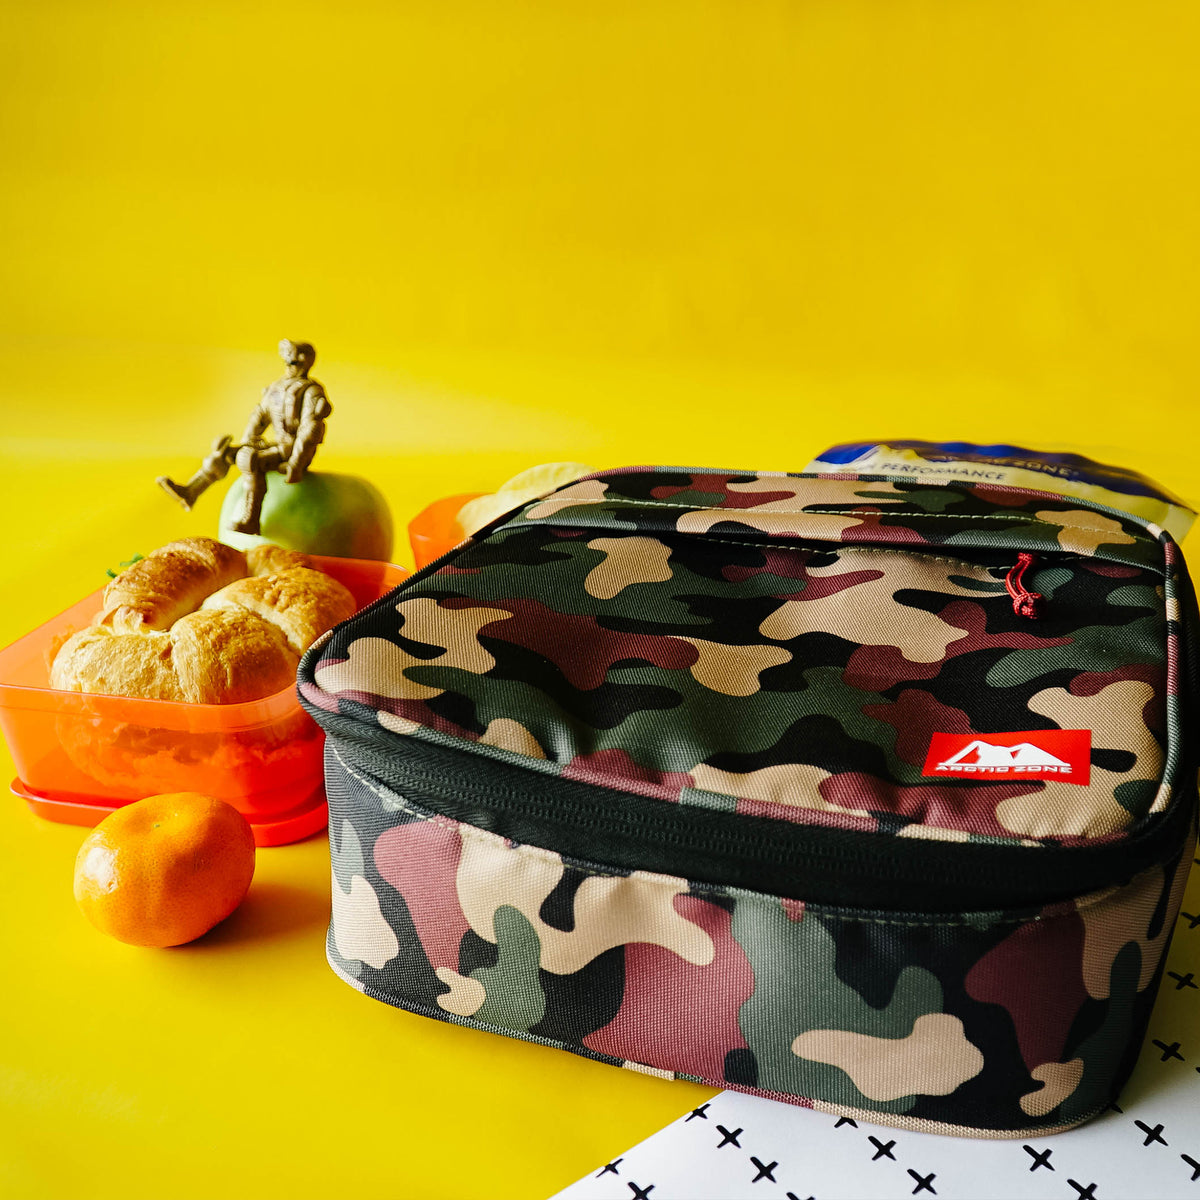 Arctic Zone® Classics Lunch Box - Camo - Lifestyle, Prepping lunch